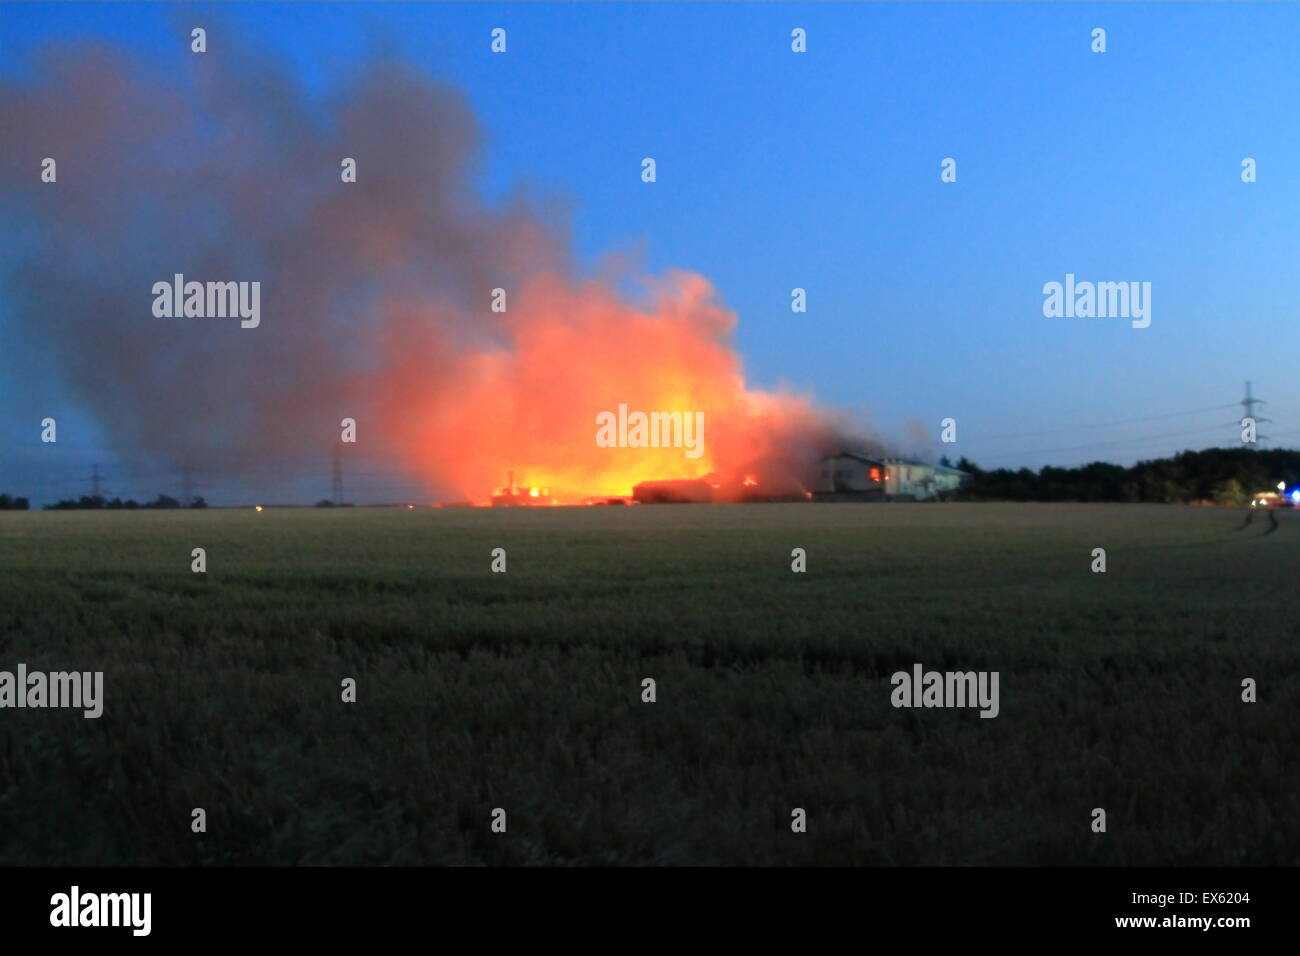 Rainham, London, UK. Tuesday 7th July 2015. Over 80 Firefighters tackle blaze in a pallet Yard in Rainham. 12 Fire Stock Photo